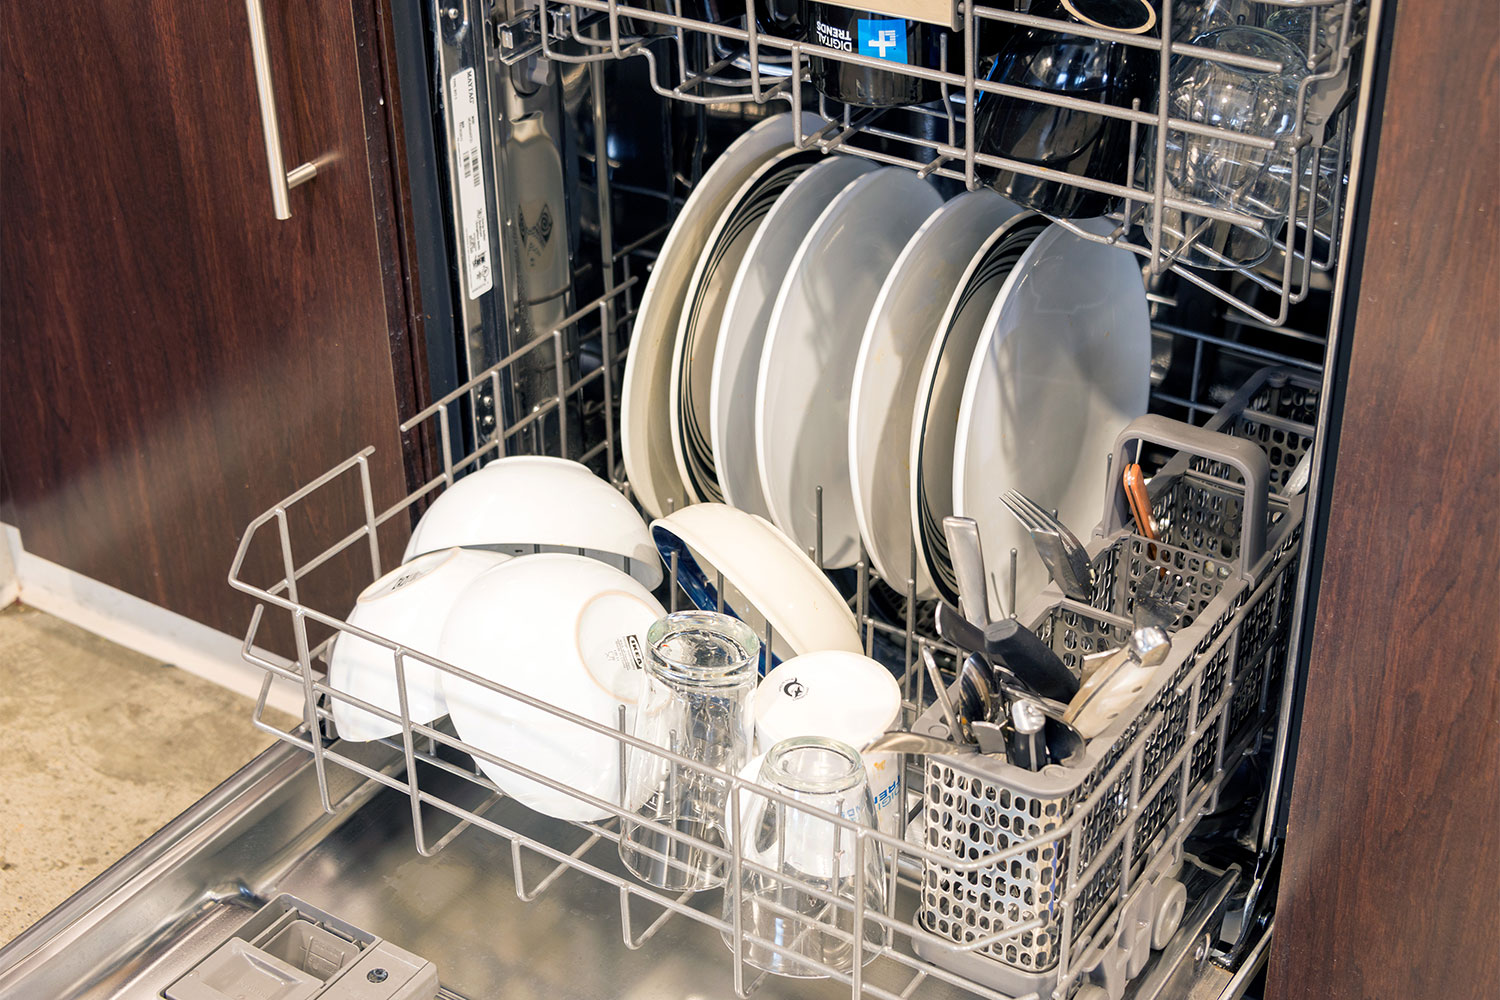 How To Quiet A Dishwasher Maytag Top Control Fingerprint Resistant Dishwasher Digital Trends